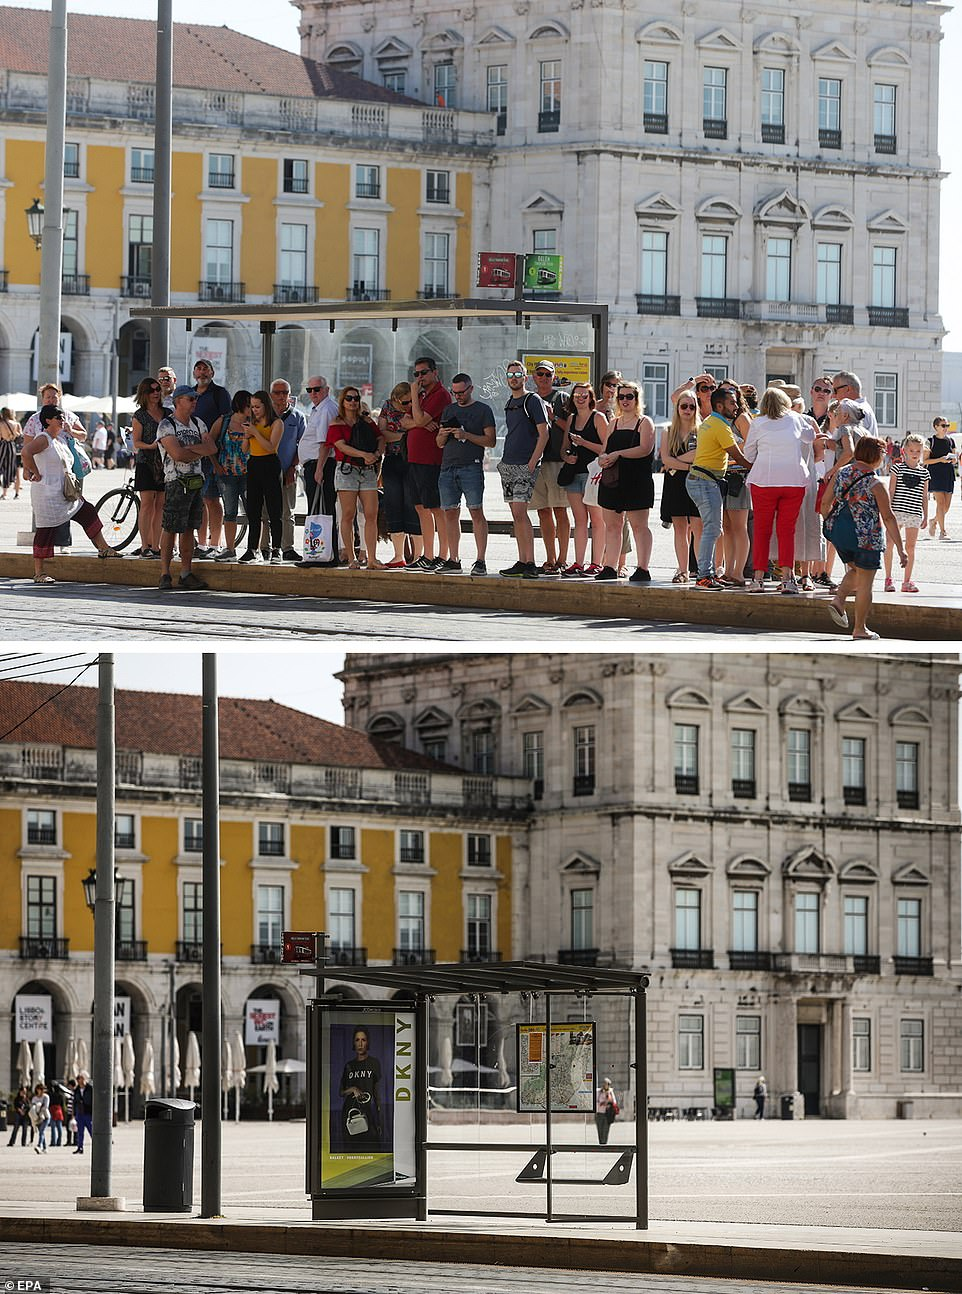 main squares in Lisbon, Portugal